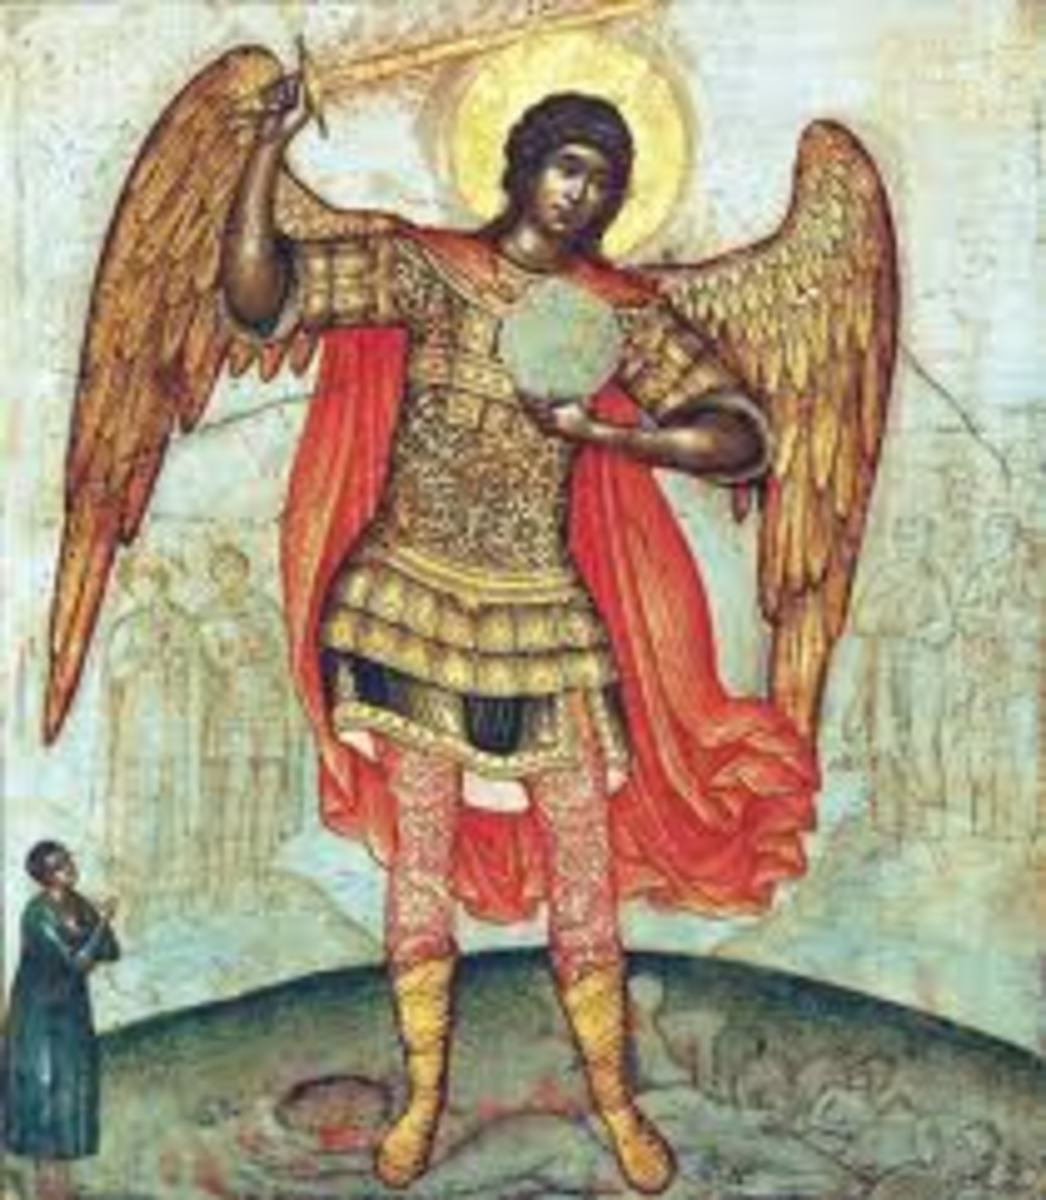 The Archangel Michael, supreme commander of all the armies of angels of heavens.